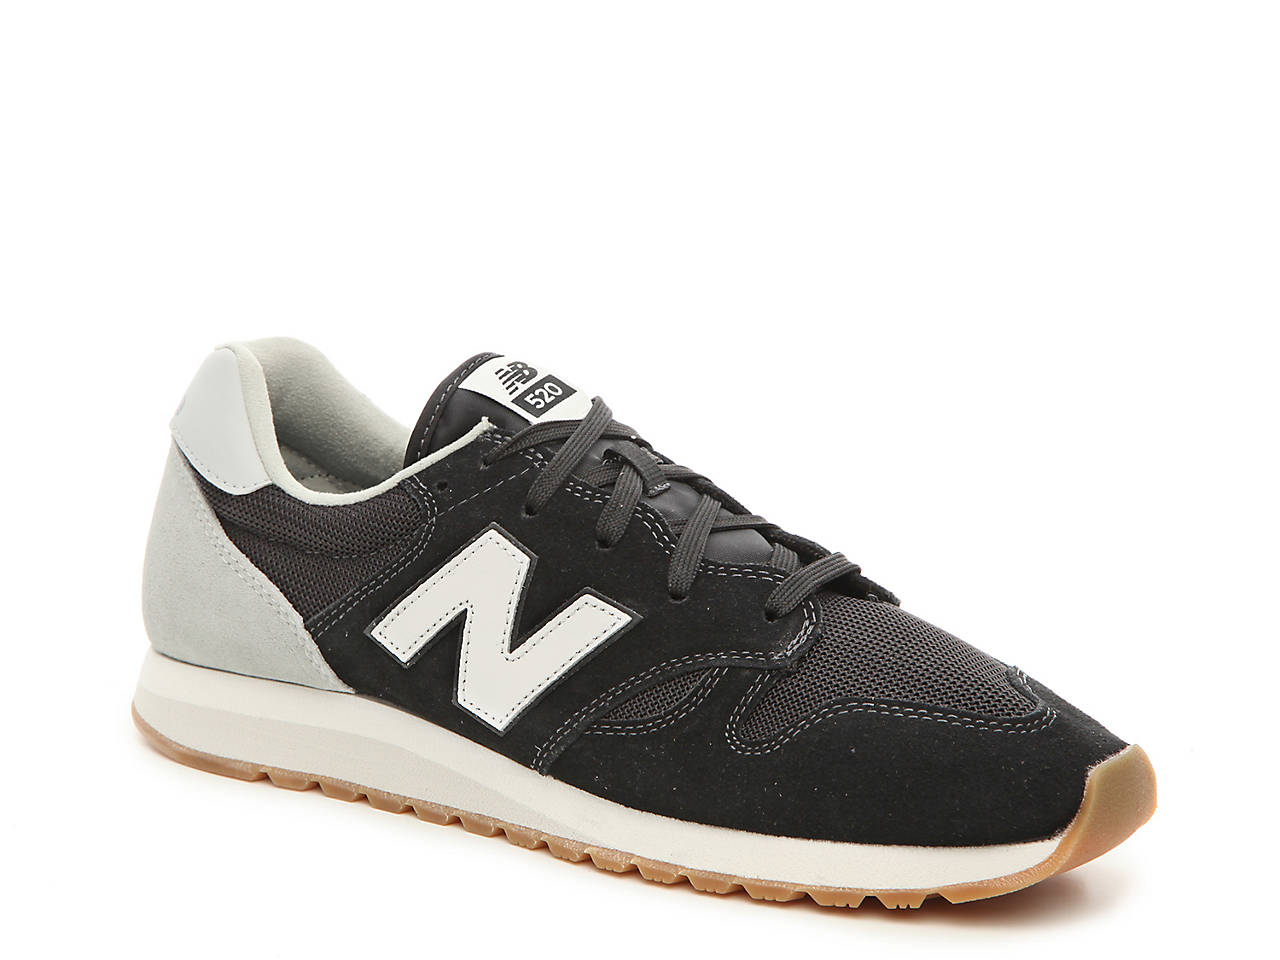 Fast Delivery Sale Online 520 SUEDE MESH - FOOTWEAR - Low-tops & sneakers New Balance Pay With Visa N3L0Reru